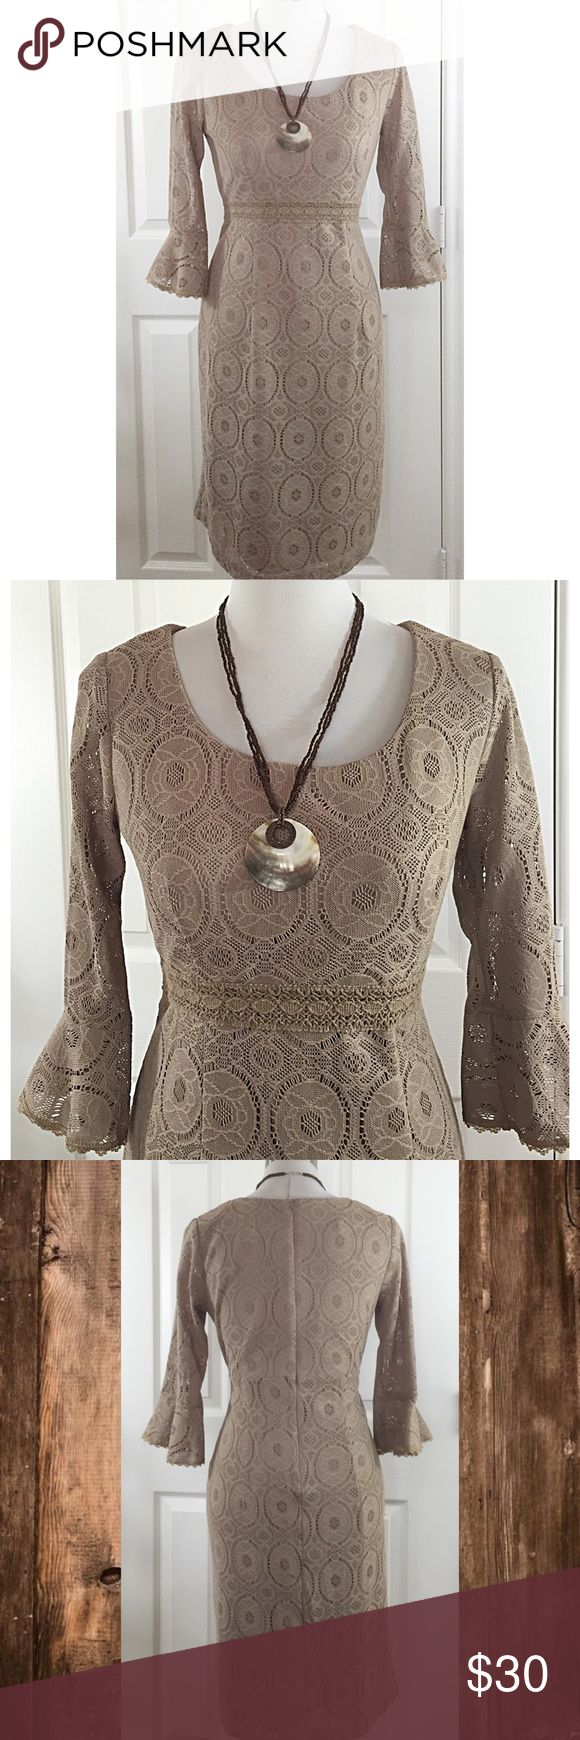 Neutral colored lacy dress with bell sleeves Gorgeous dress. Beautiful sleeve treatment, fully lined, back zipper. Excellent condition. Chris McLaughlin Dresses